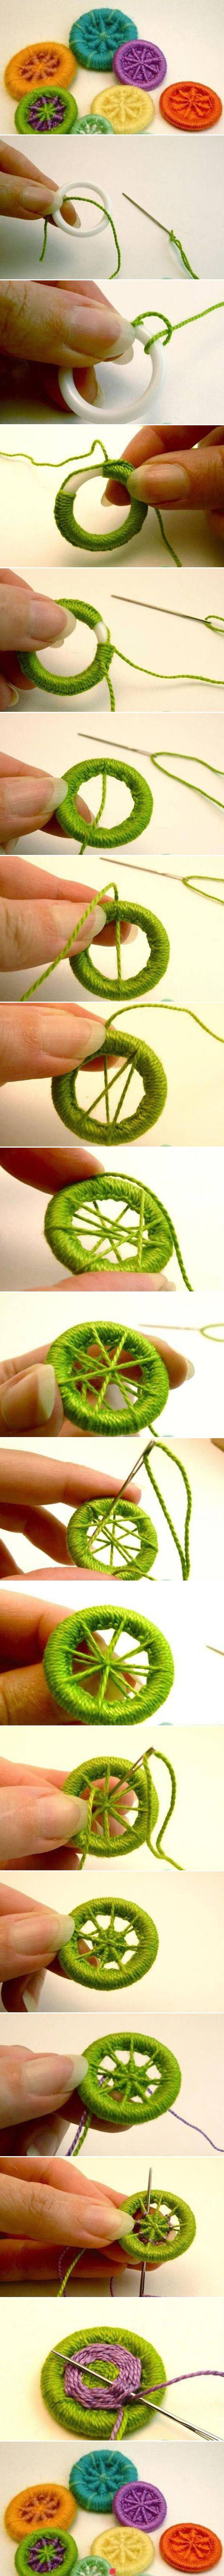 Dorset buttons - I may do a giant one of these with rope and turn it into and outdoor seat/swing.